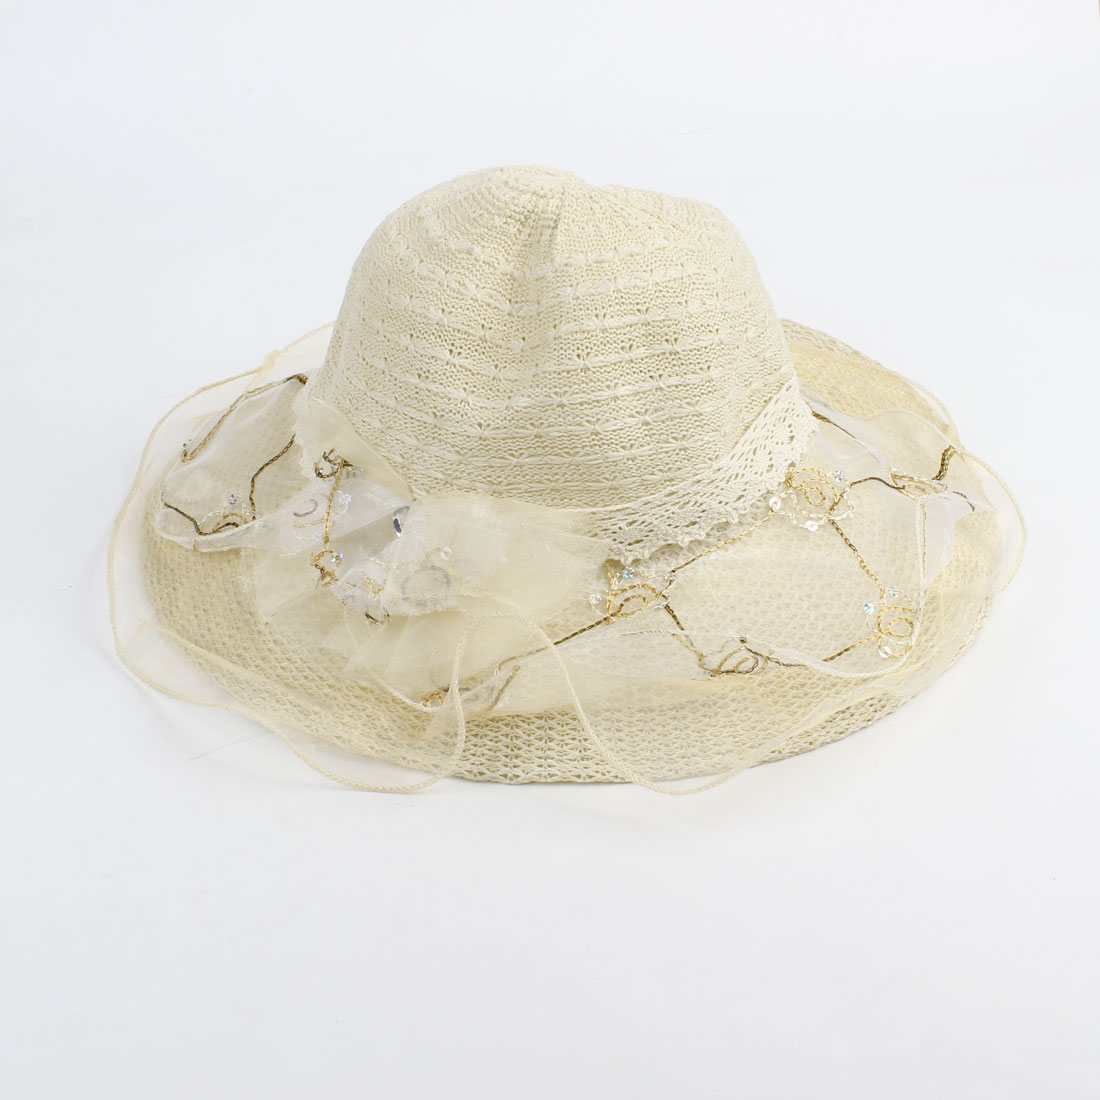 Ladies Head Wear Linen Lace Band Sequin Folwer Gauze Brim Braided Cap Hat Khaki